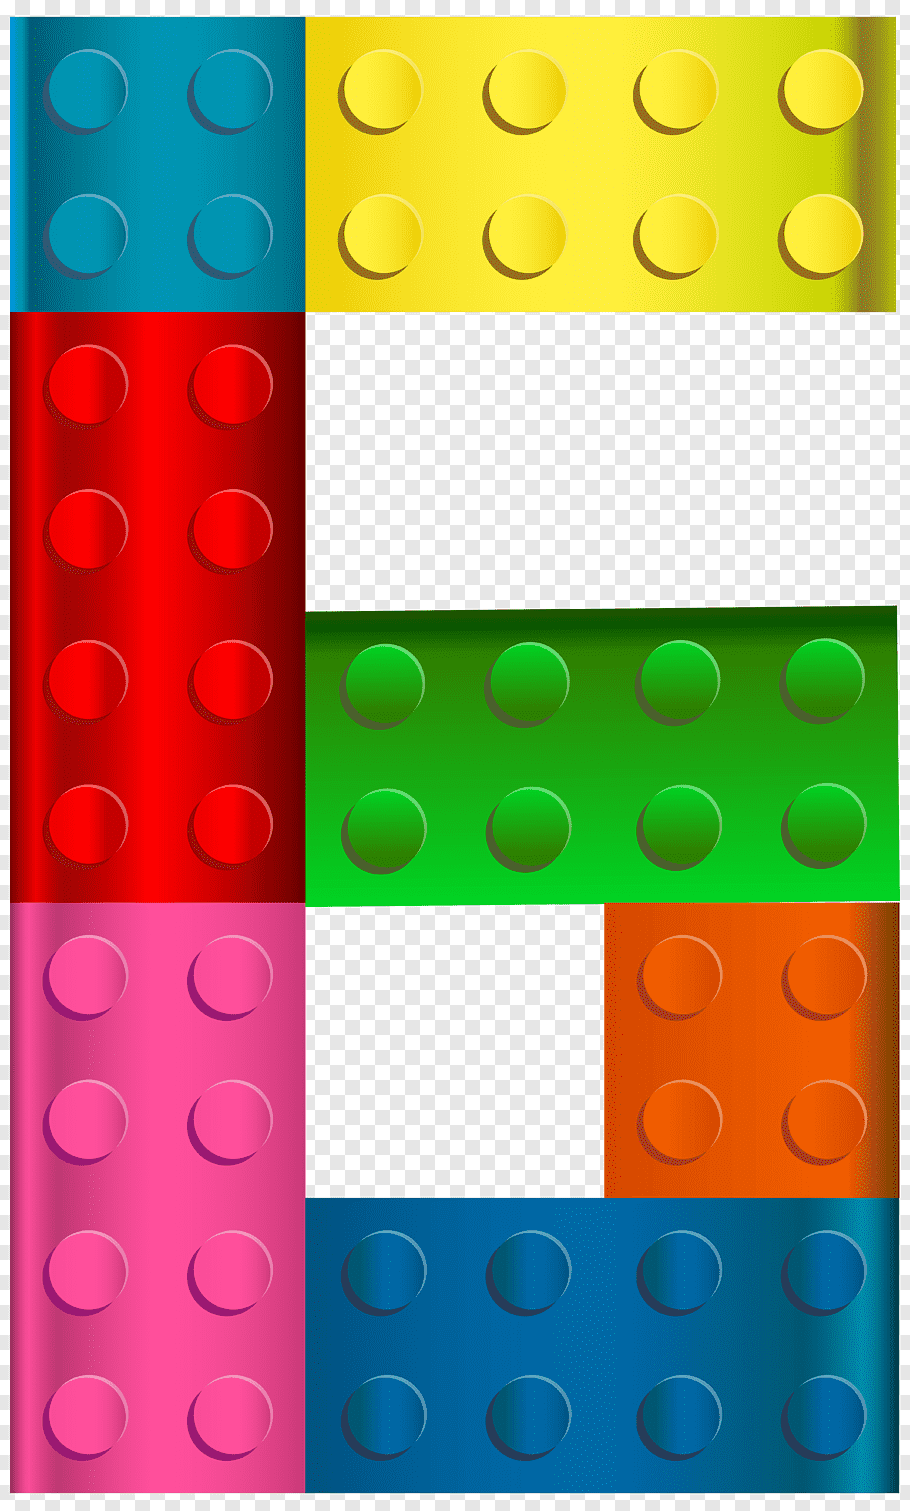 Toy Group Png - Legoland California Toy block The Lego Group, anemone PNG | PNGWave